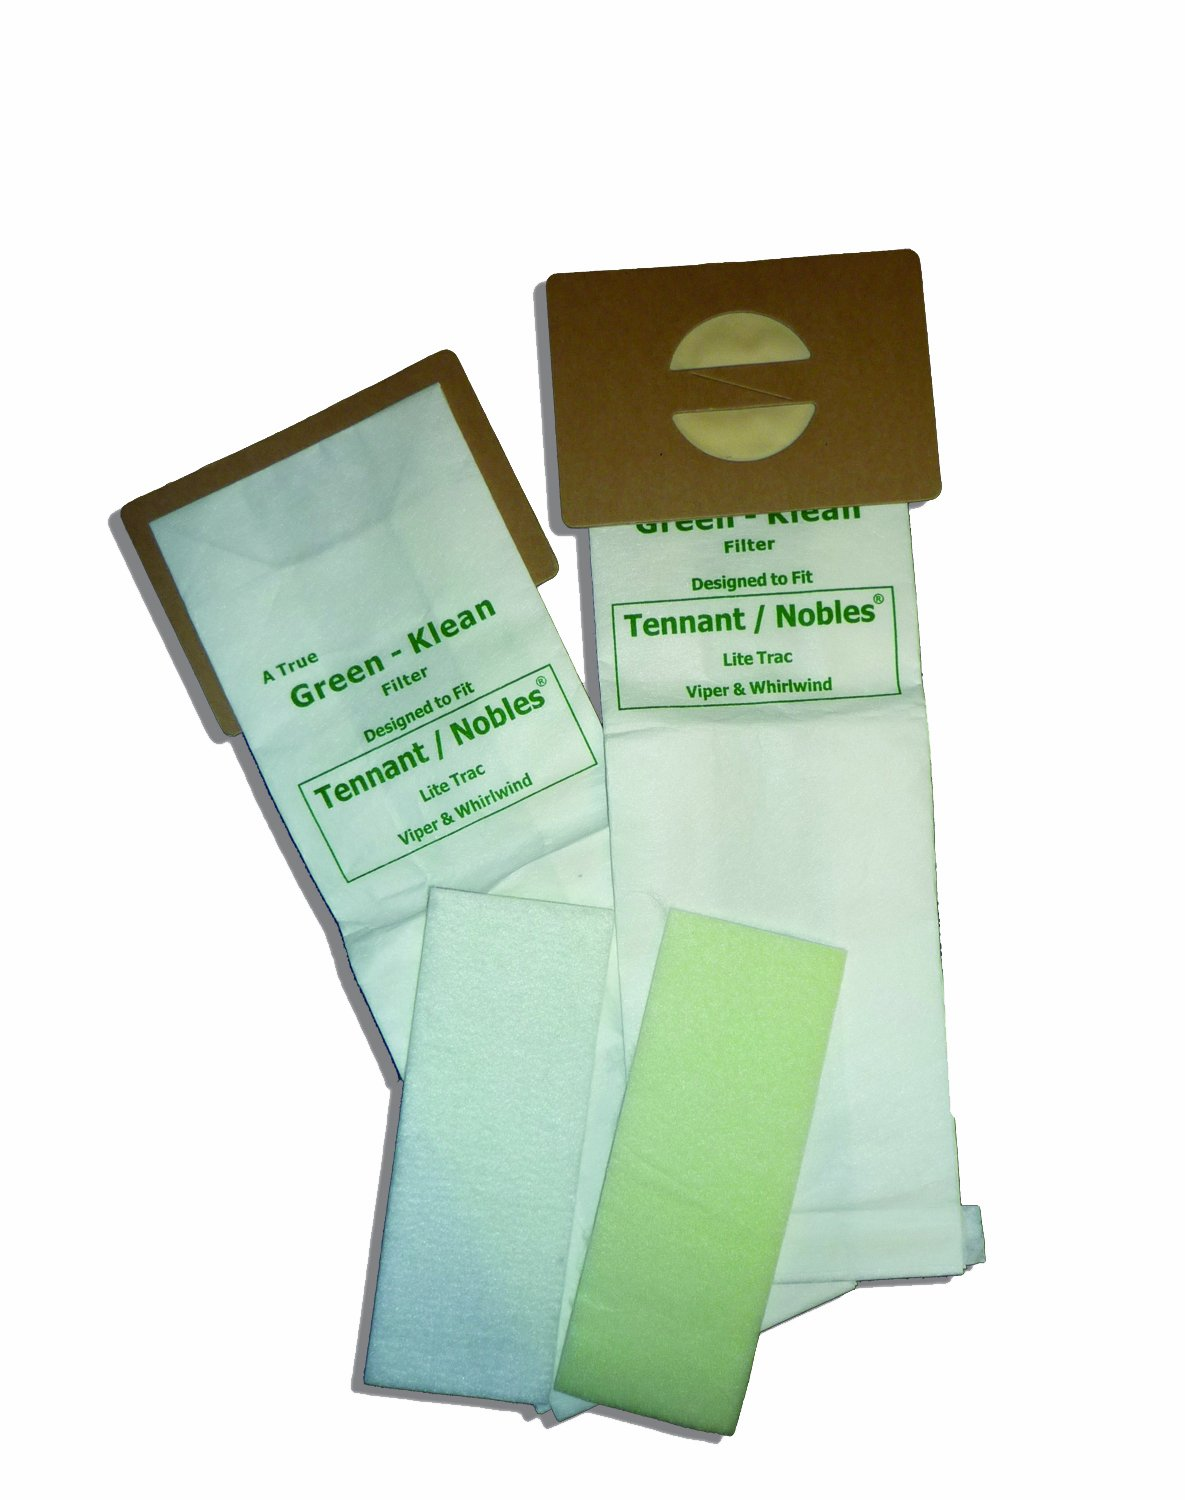 Green Klean GK-LitTrac Tennant/Nobles LiteTrac, Viper and Whirlwind Replacement Vacuum Bags (Pack of 100)